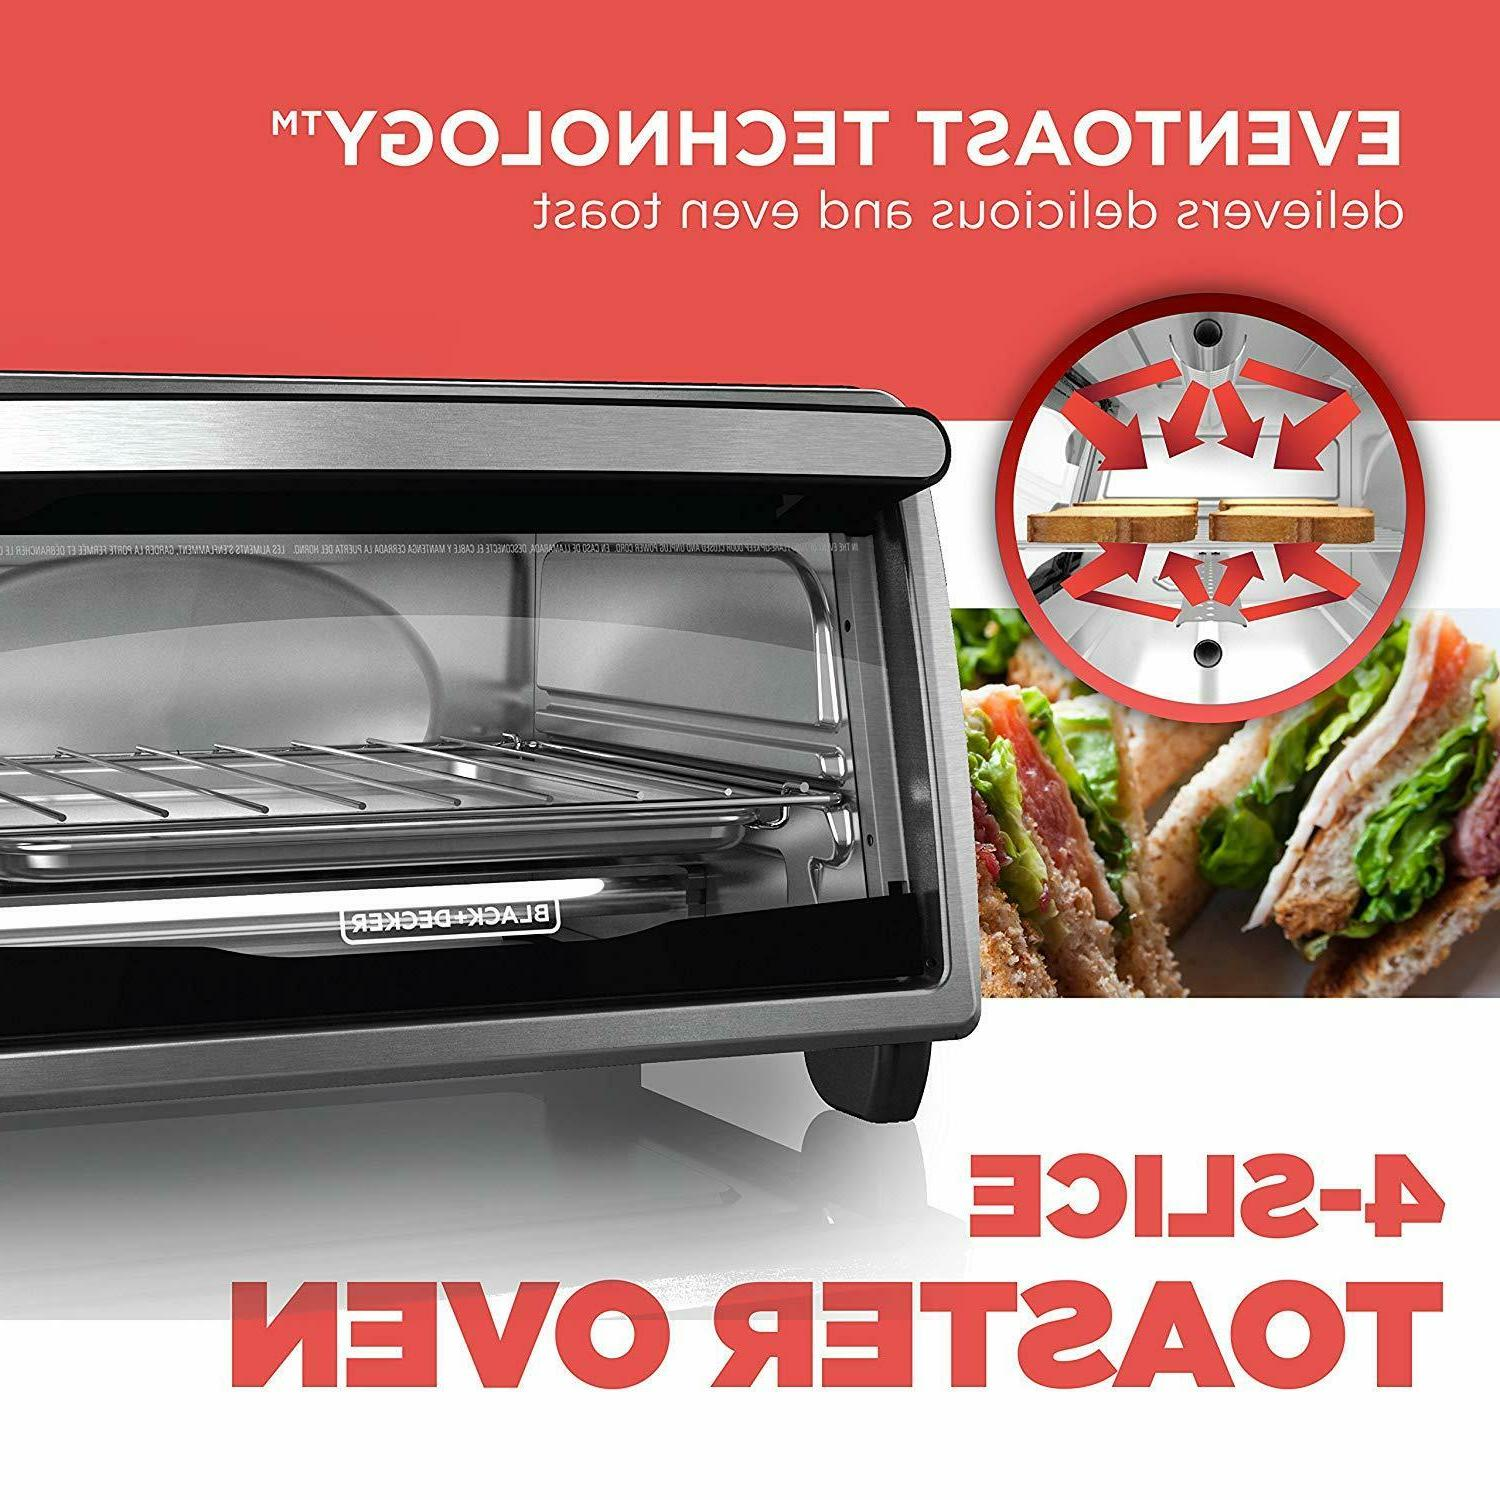 BLACK+DECKER Oven, Stainless SHIPPING